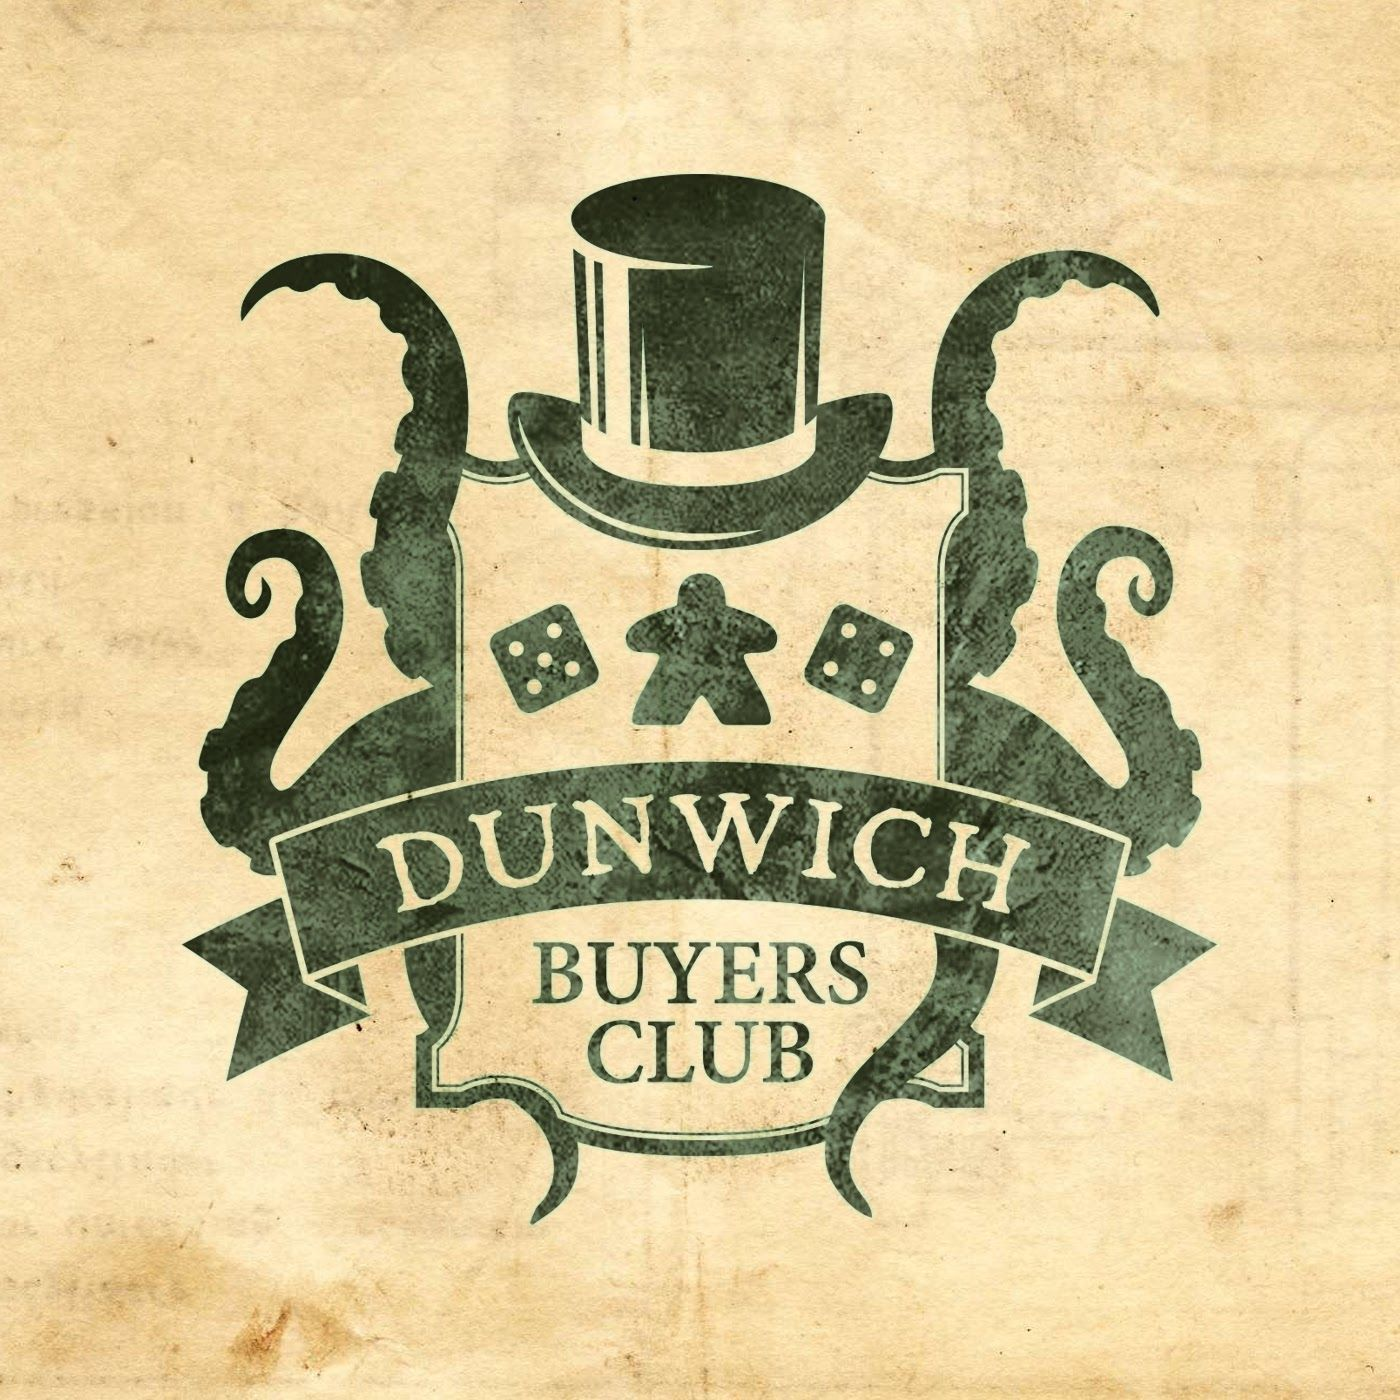 Dunwich Buyers Club